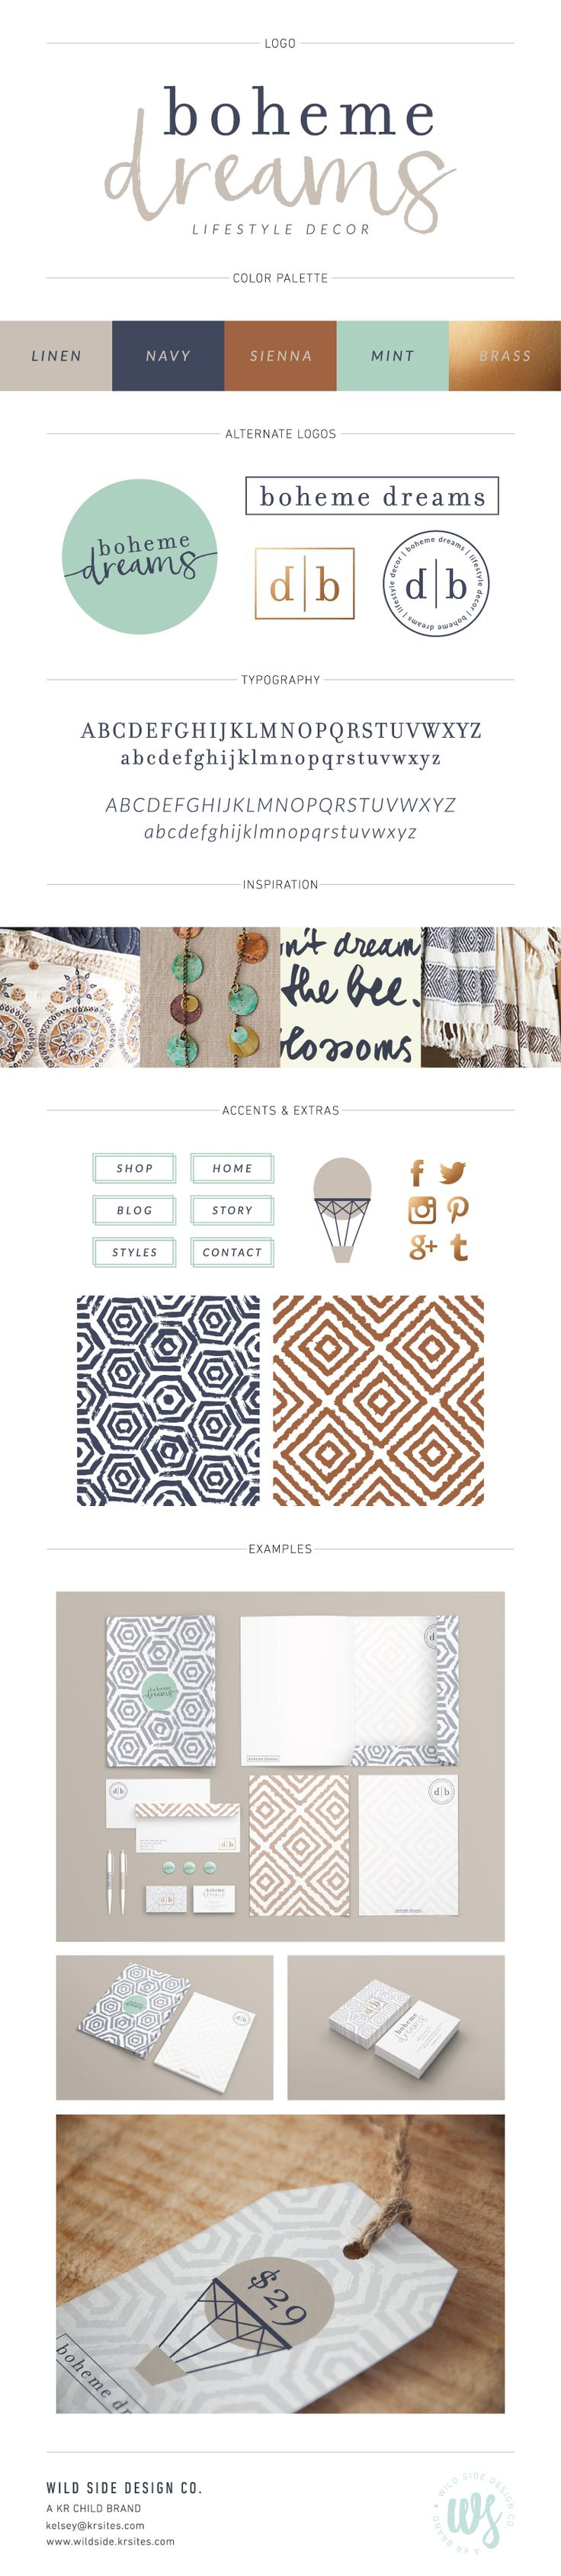 Brand Launch | Brand Style Board | Boho Home Decor Branding | Boheme Dreams Brand Design by Wild Side Design Co. | #brand #print www.wildside.krsites.com